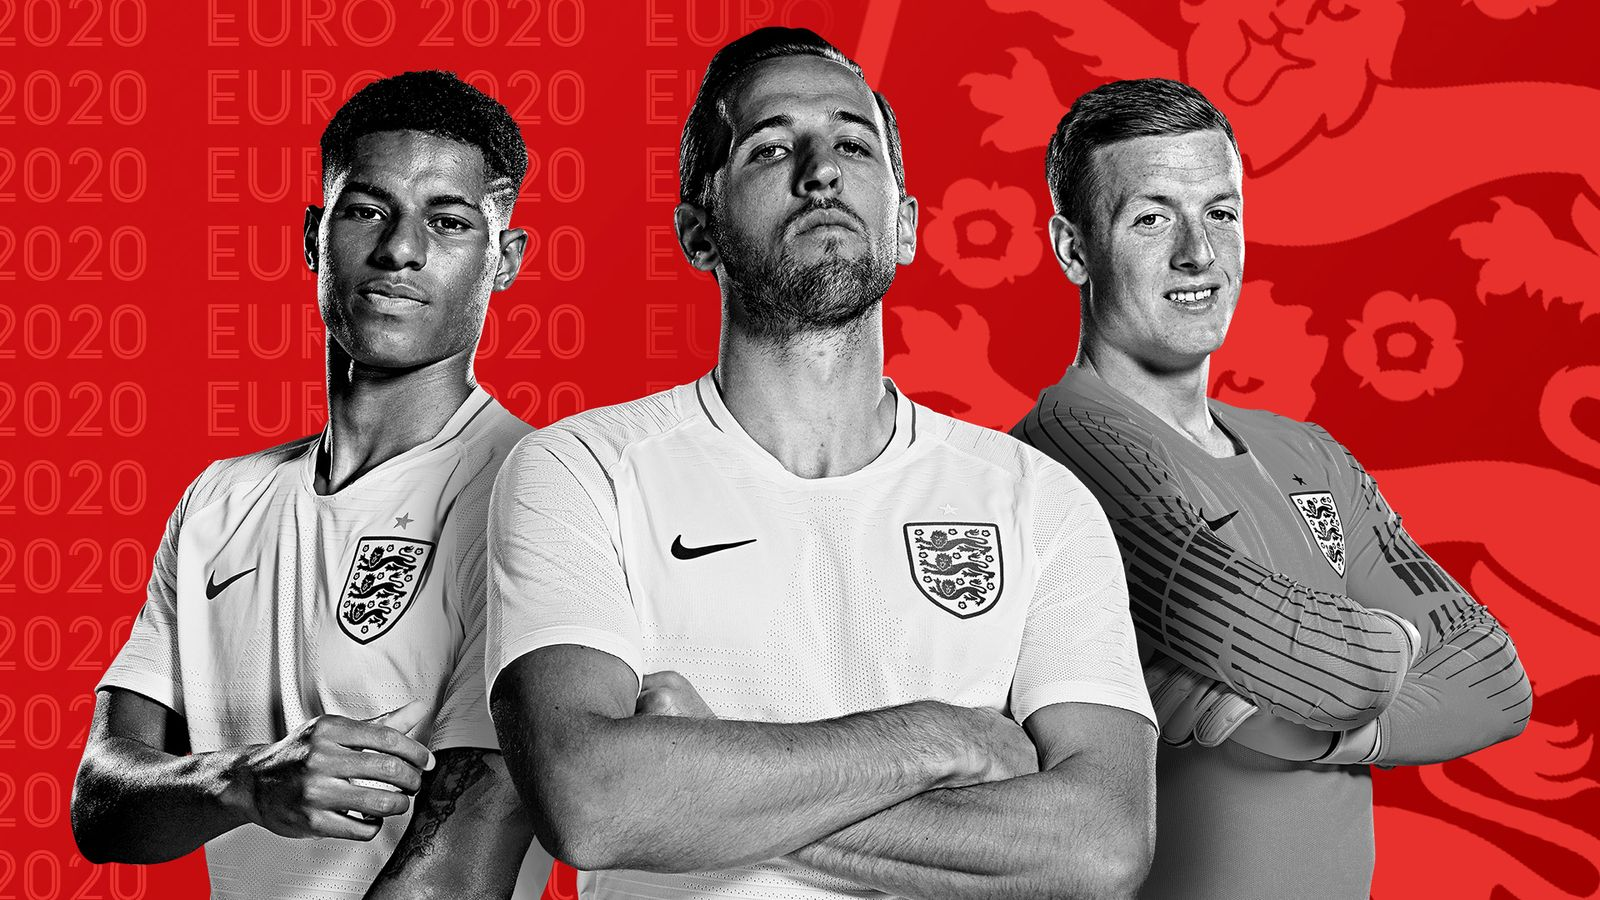 England's Euro 2020 squad: Hits and misses